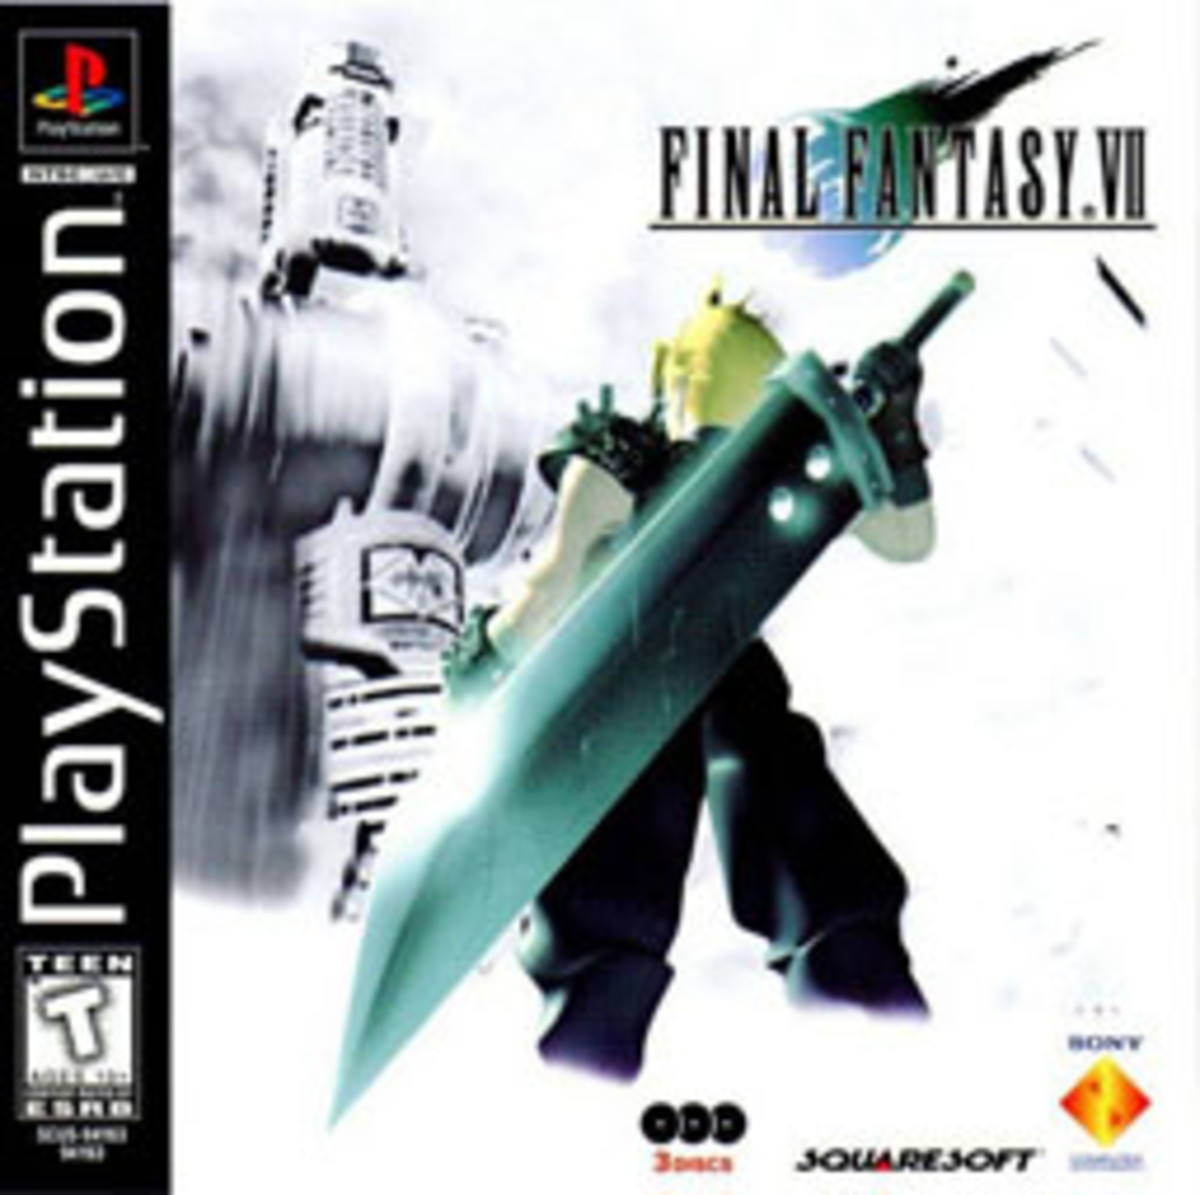 Final Fantasy VII box art.